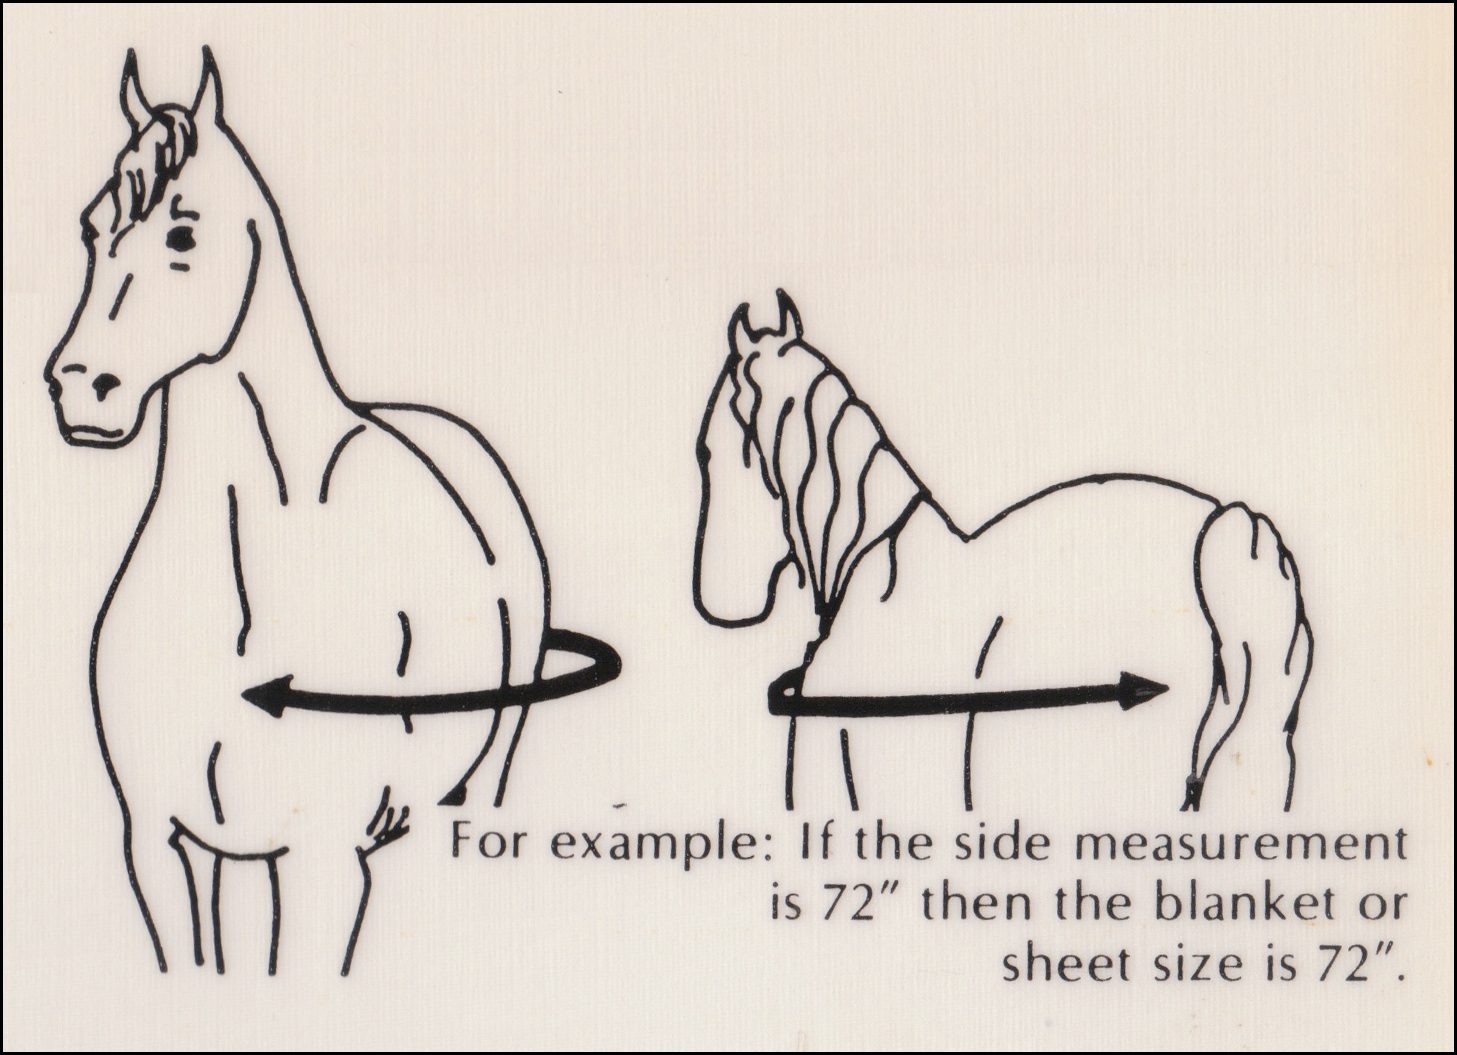 Here is how toHere is how tomeasureyourHere is how toHere is how tomeasureyourhorseto find aHere is how toHere is how tomeasureyourHere is how toHere is how tomeasureyourhorseto find ahorse blanketthat will fit properly. Keep your hores safe and more comfortable with properHere is how toHere is how tomeasureyourHere is how toHere is how tomeasureyourhorseto find aHere is how toHere is how tomeasureyourHere is how toHere is how tomeasureyourhorseto find ahorse blanketthat will fit properly. Keep your hores safe and more comfortable with properblanketfit.